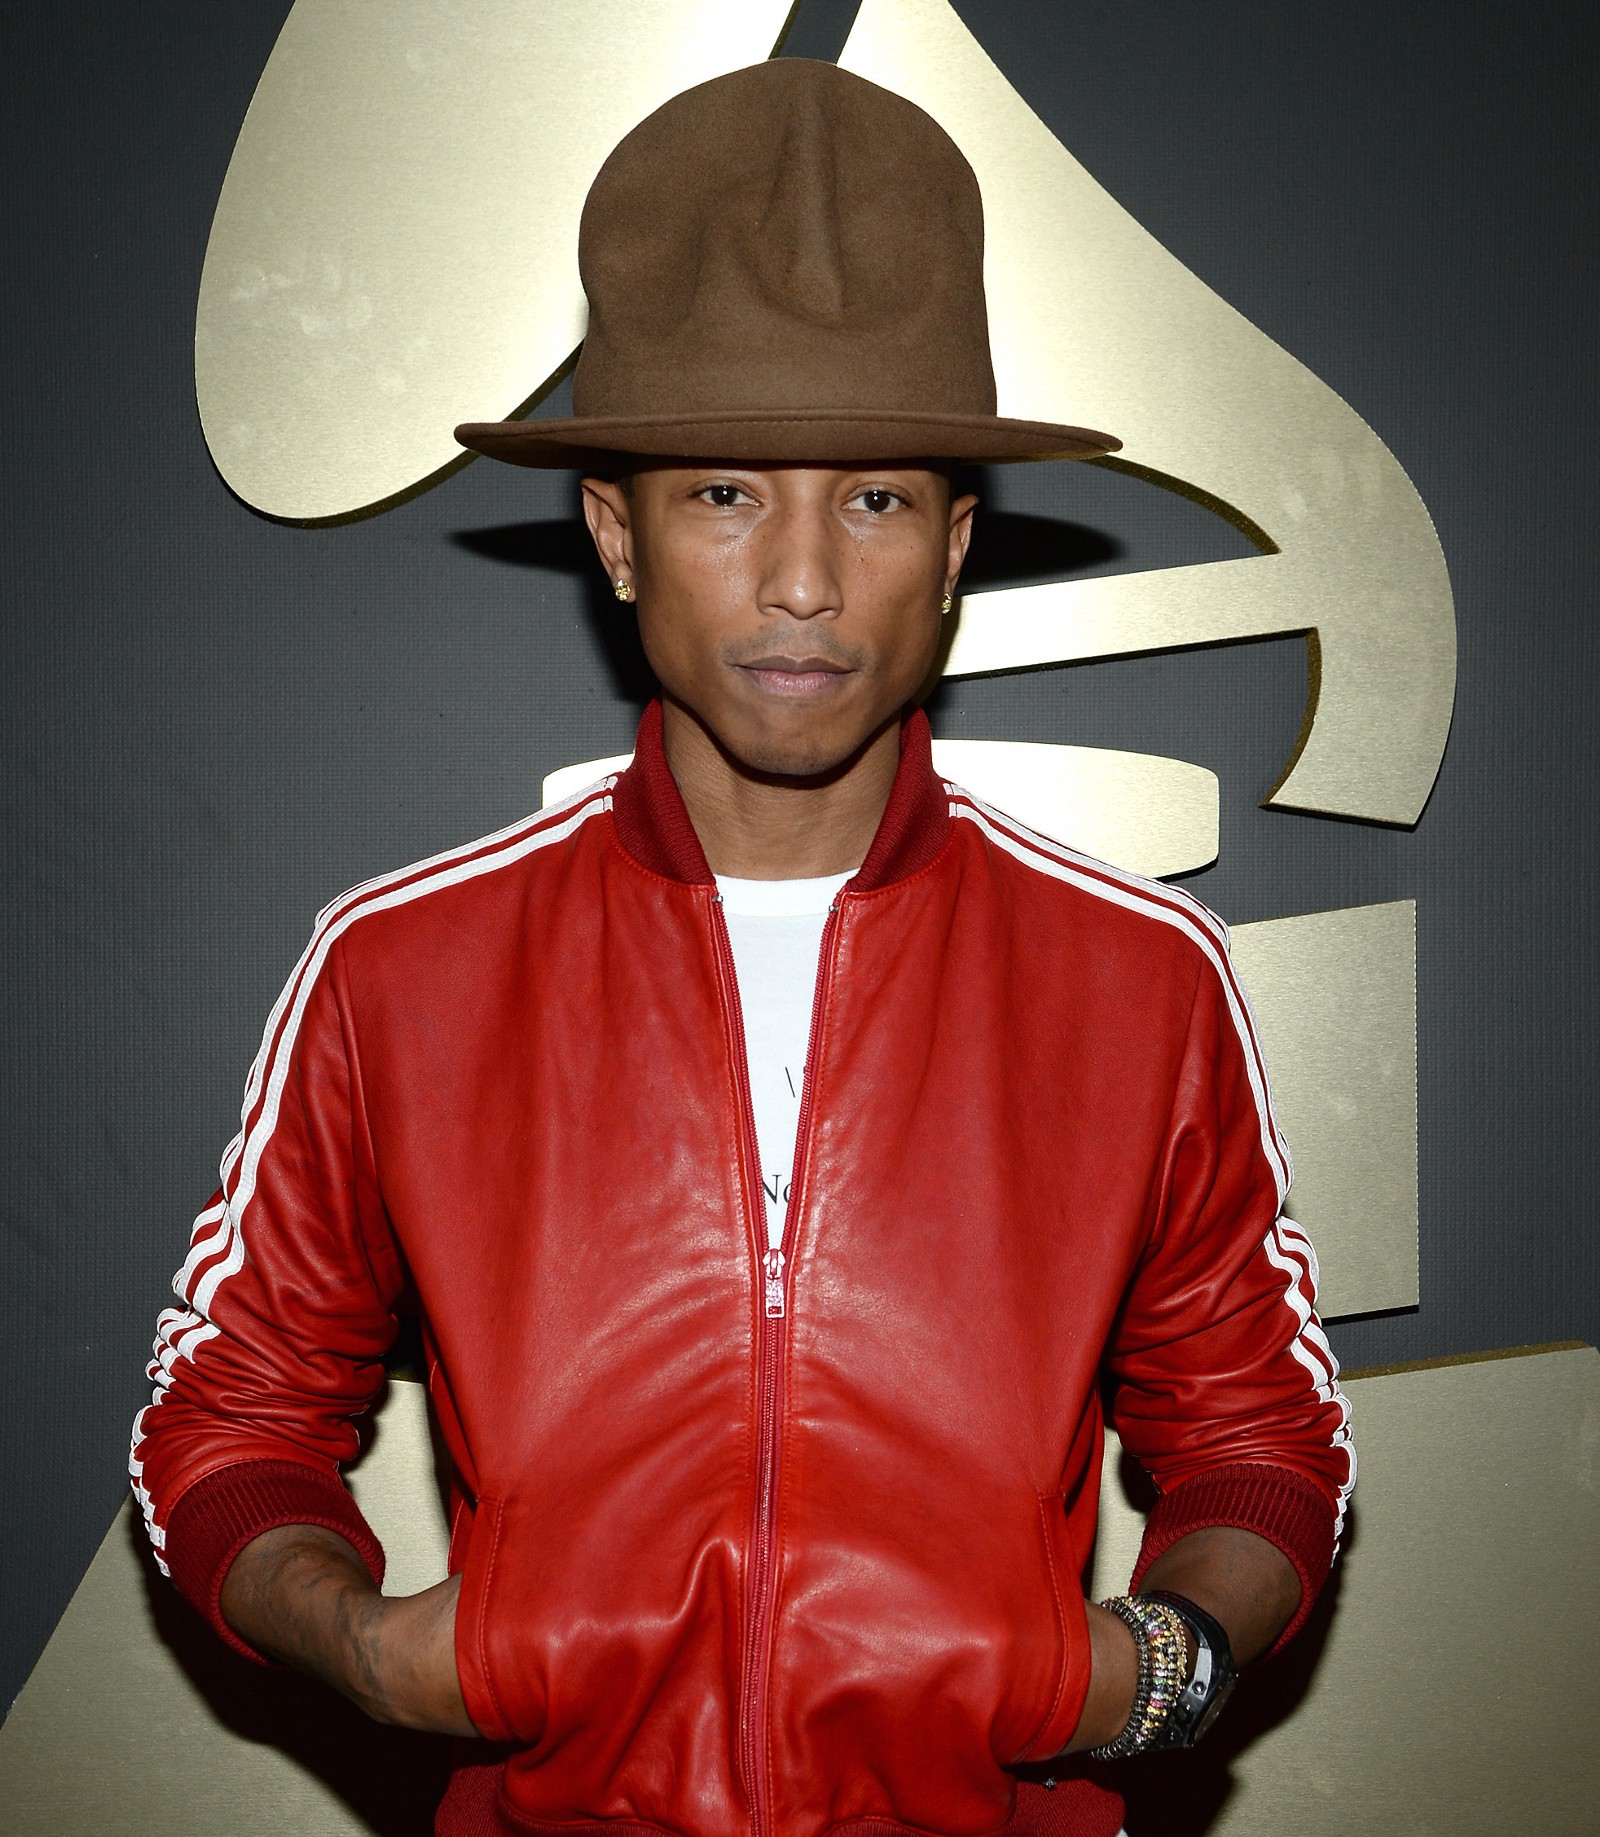 A Year of @Pharrellhat